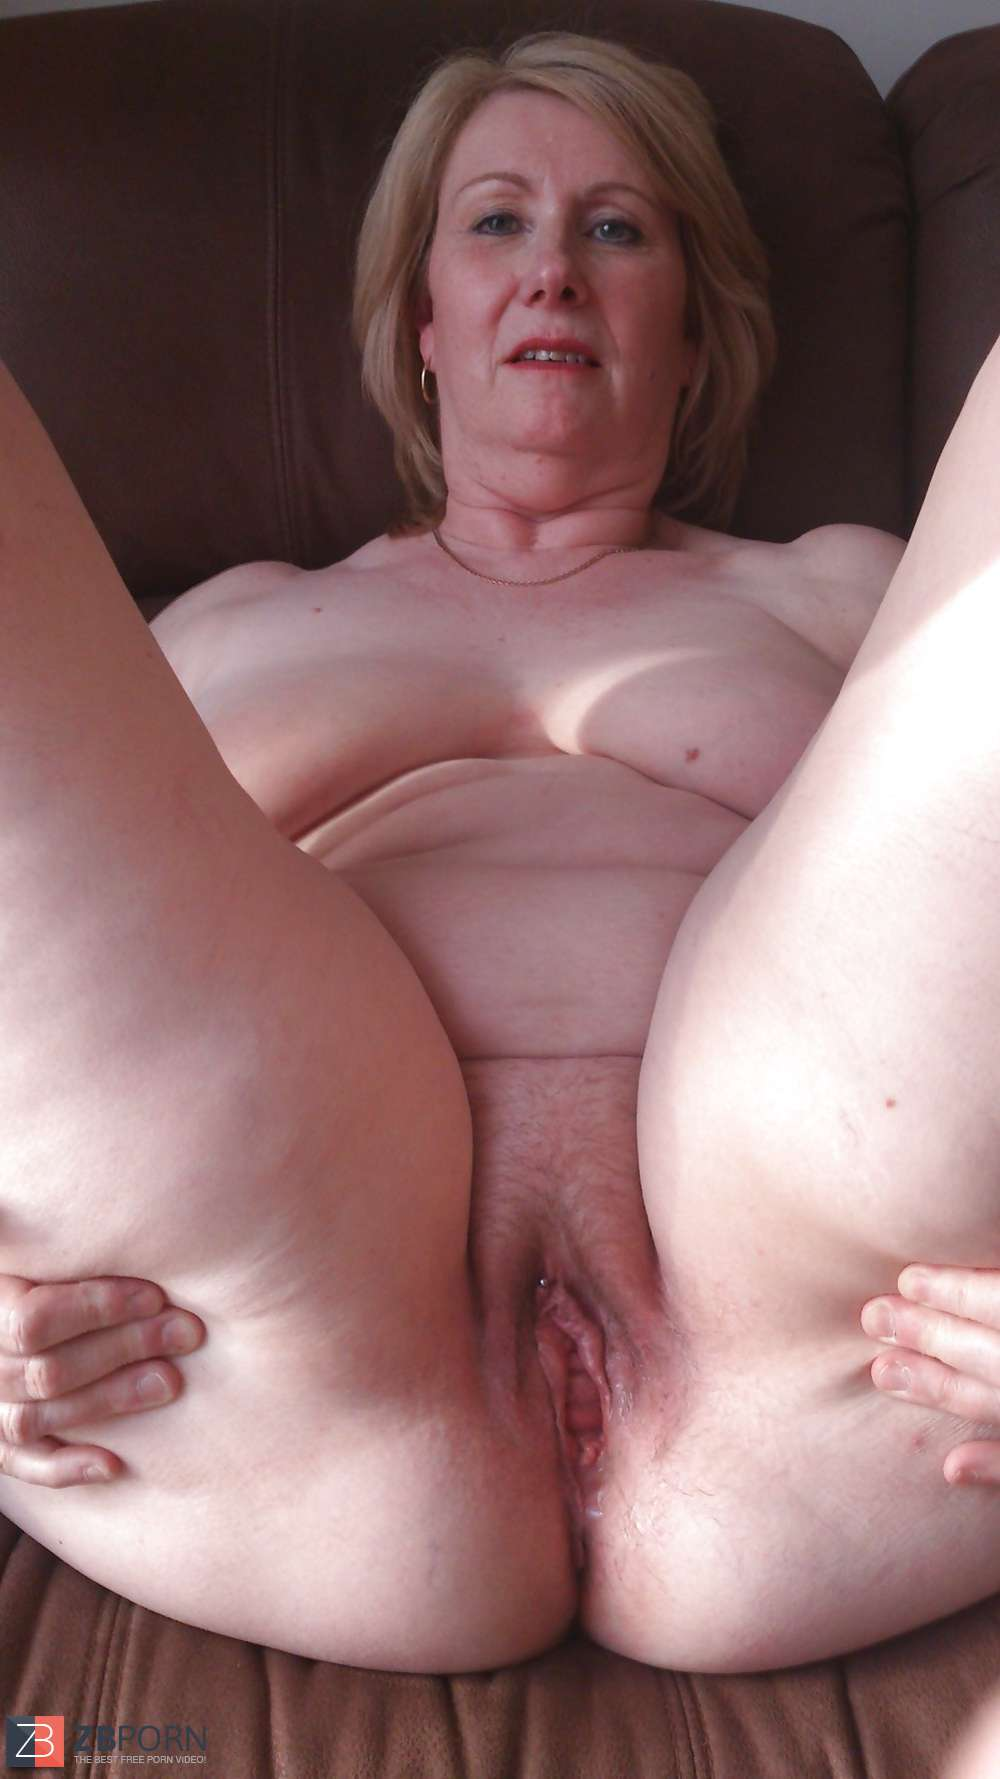 Bbw Nude Home - Bbw nude home pic - Porno most watched photos FREE.